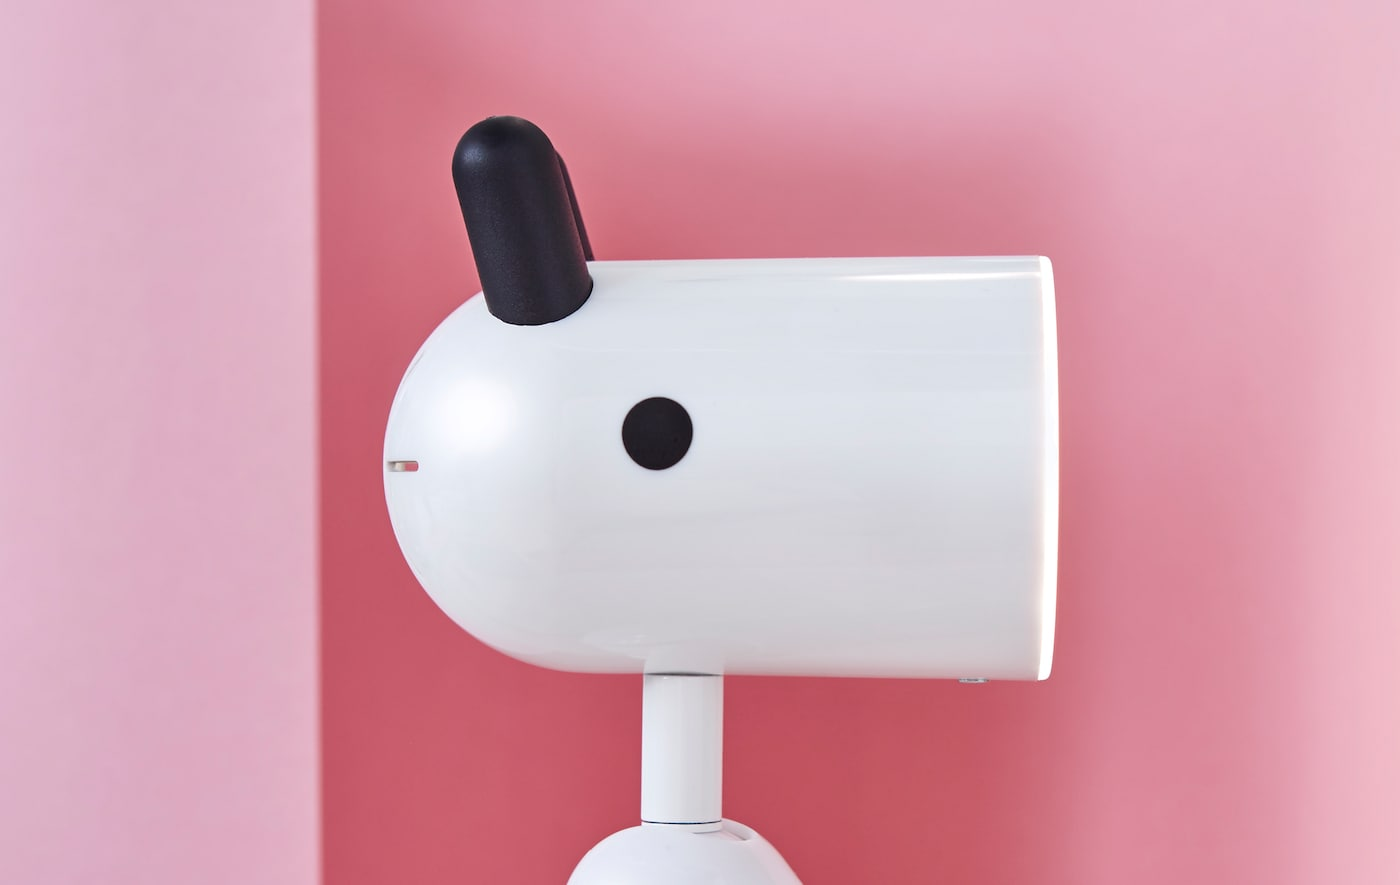 A close-up of the new KRUX lamp with eyes and ears.